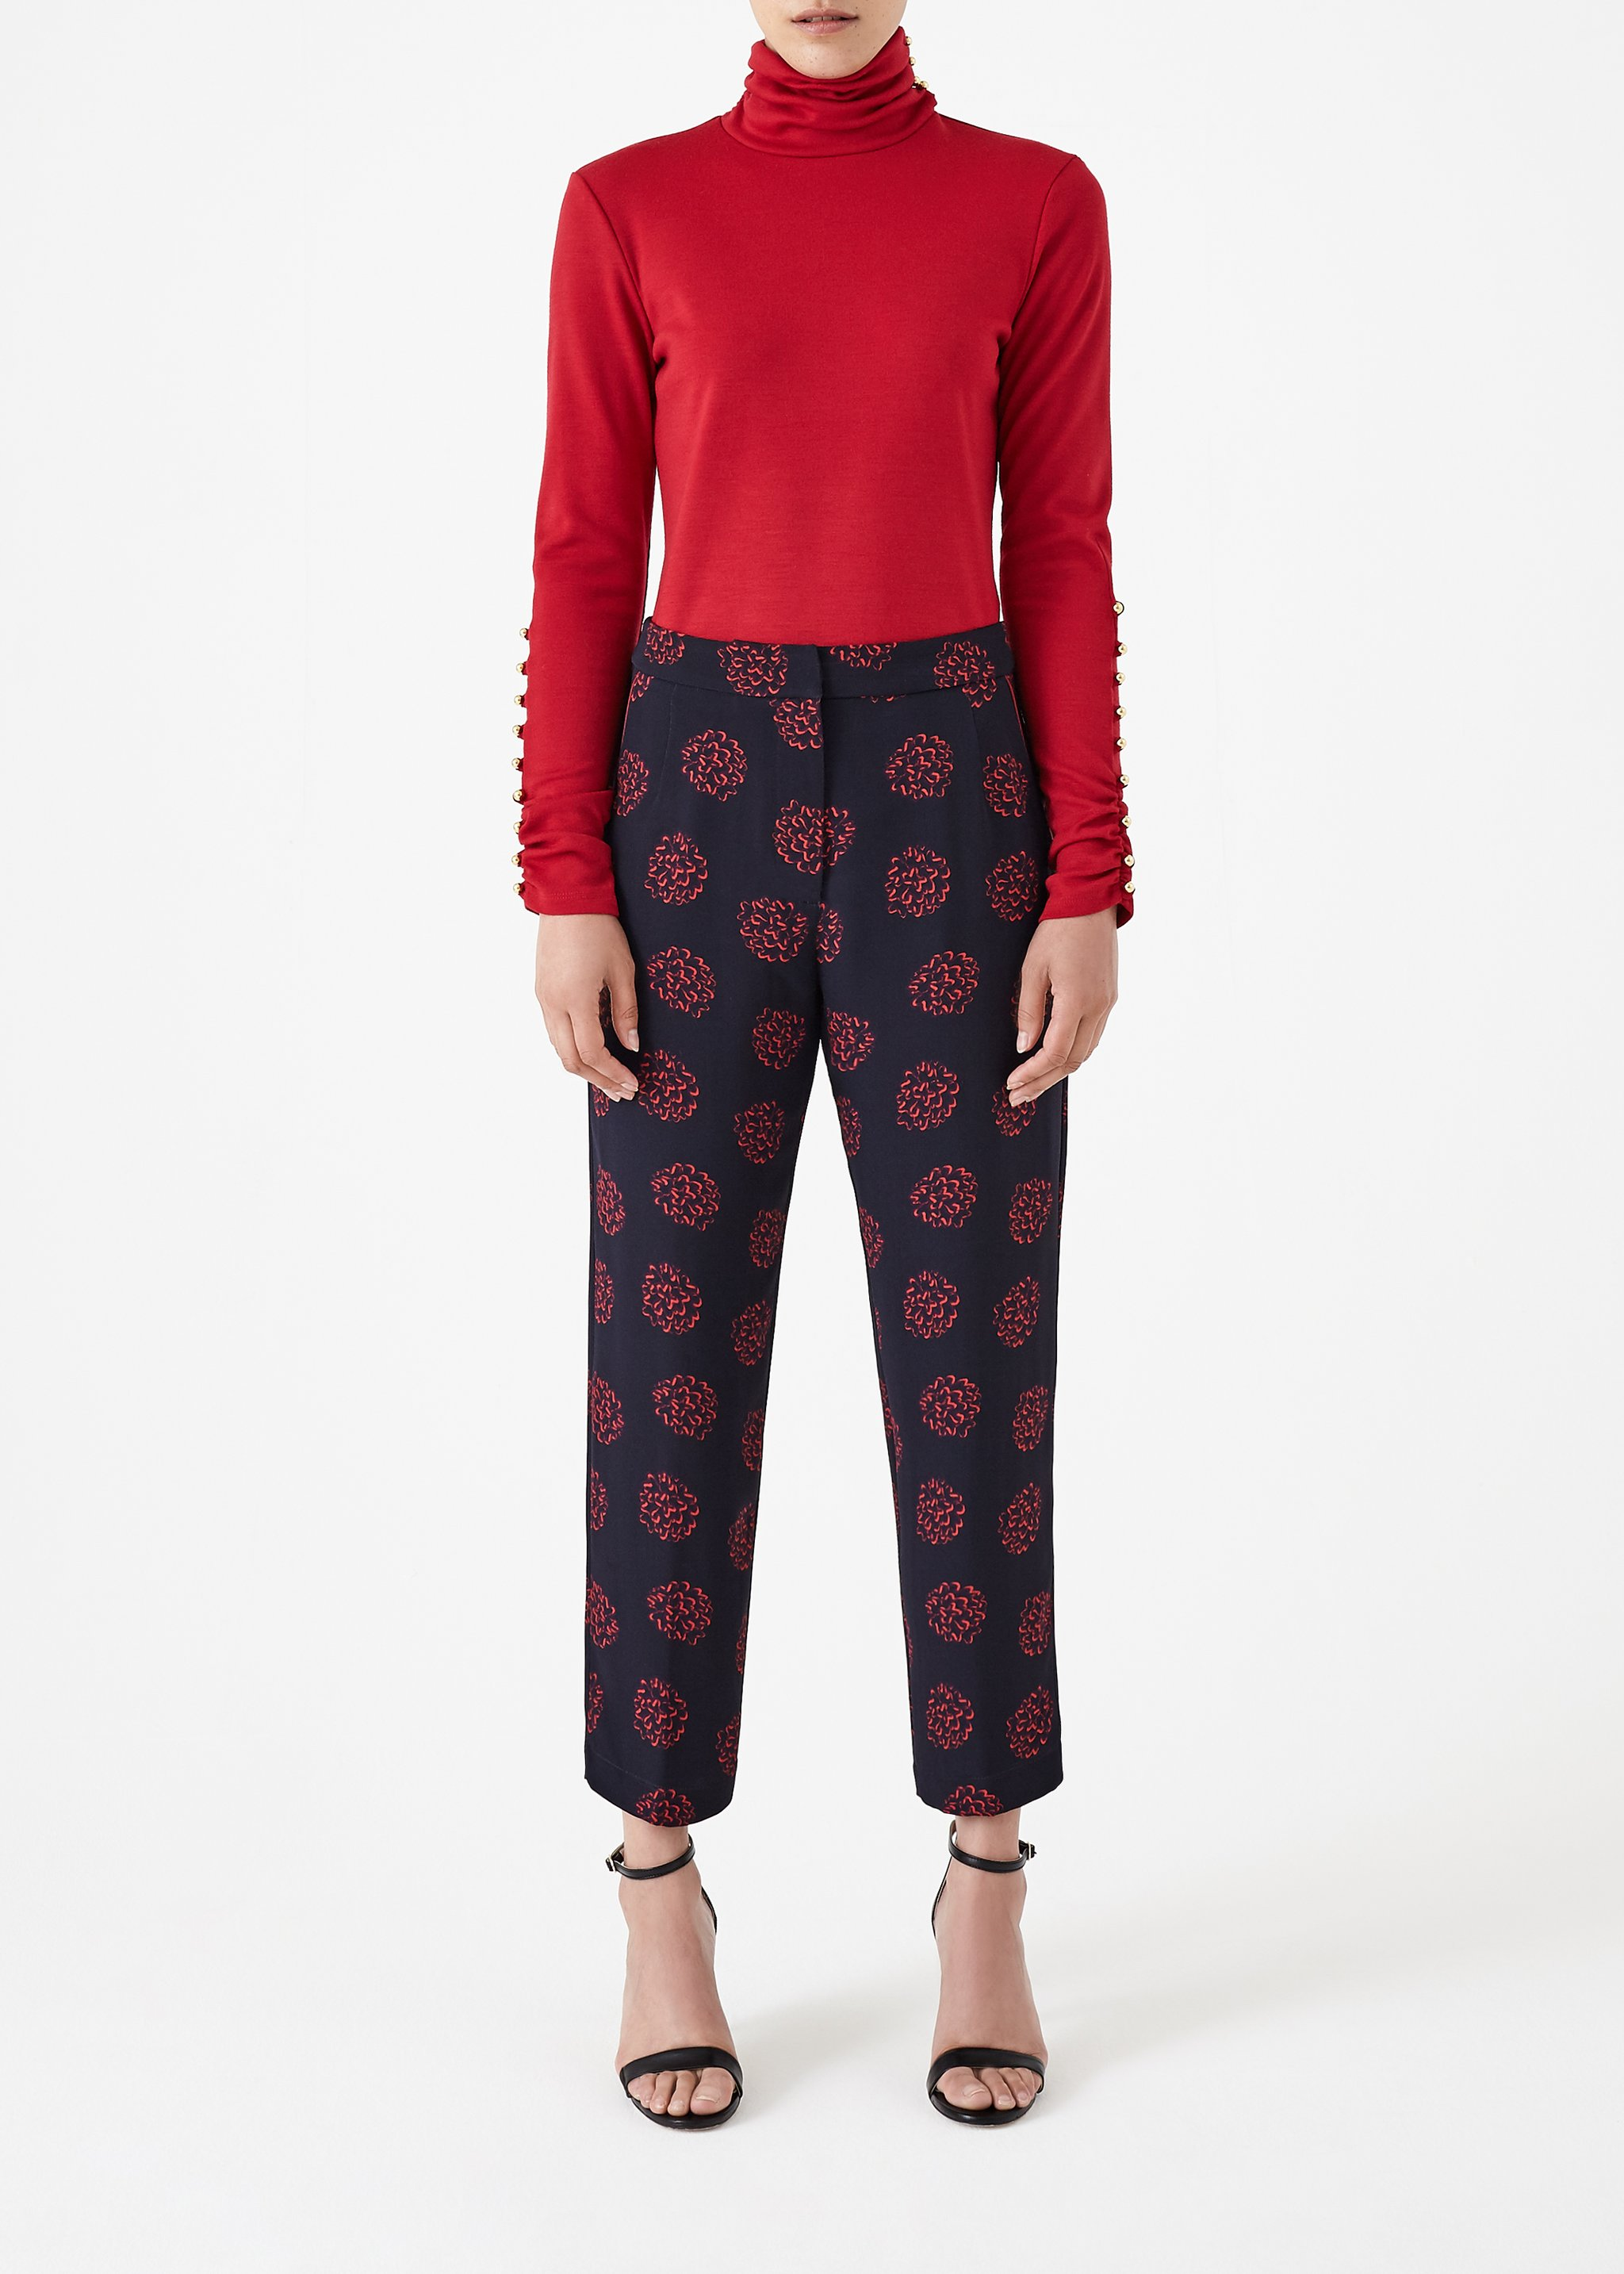 Red Clover Top by Bozena Jankowska on curated-crowd.com